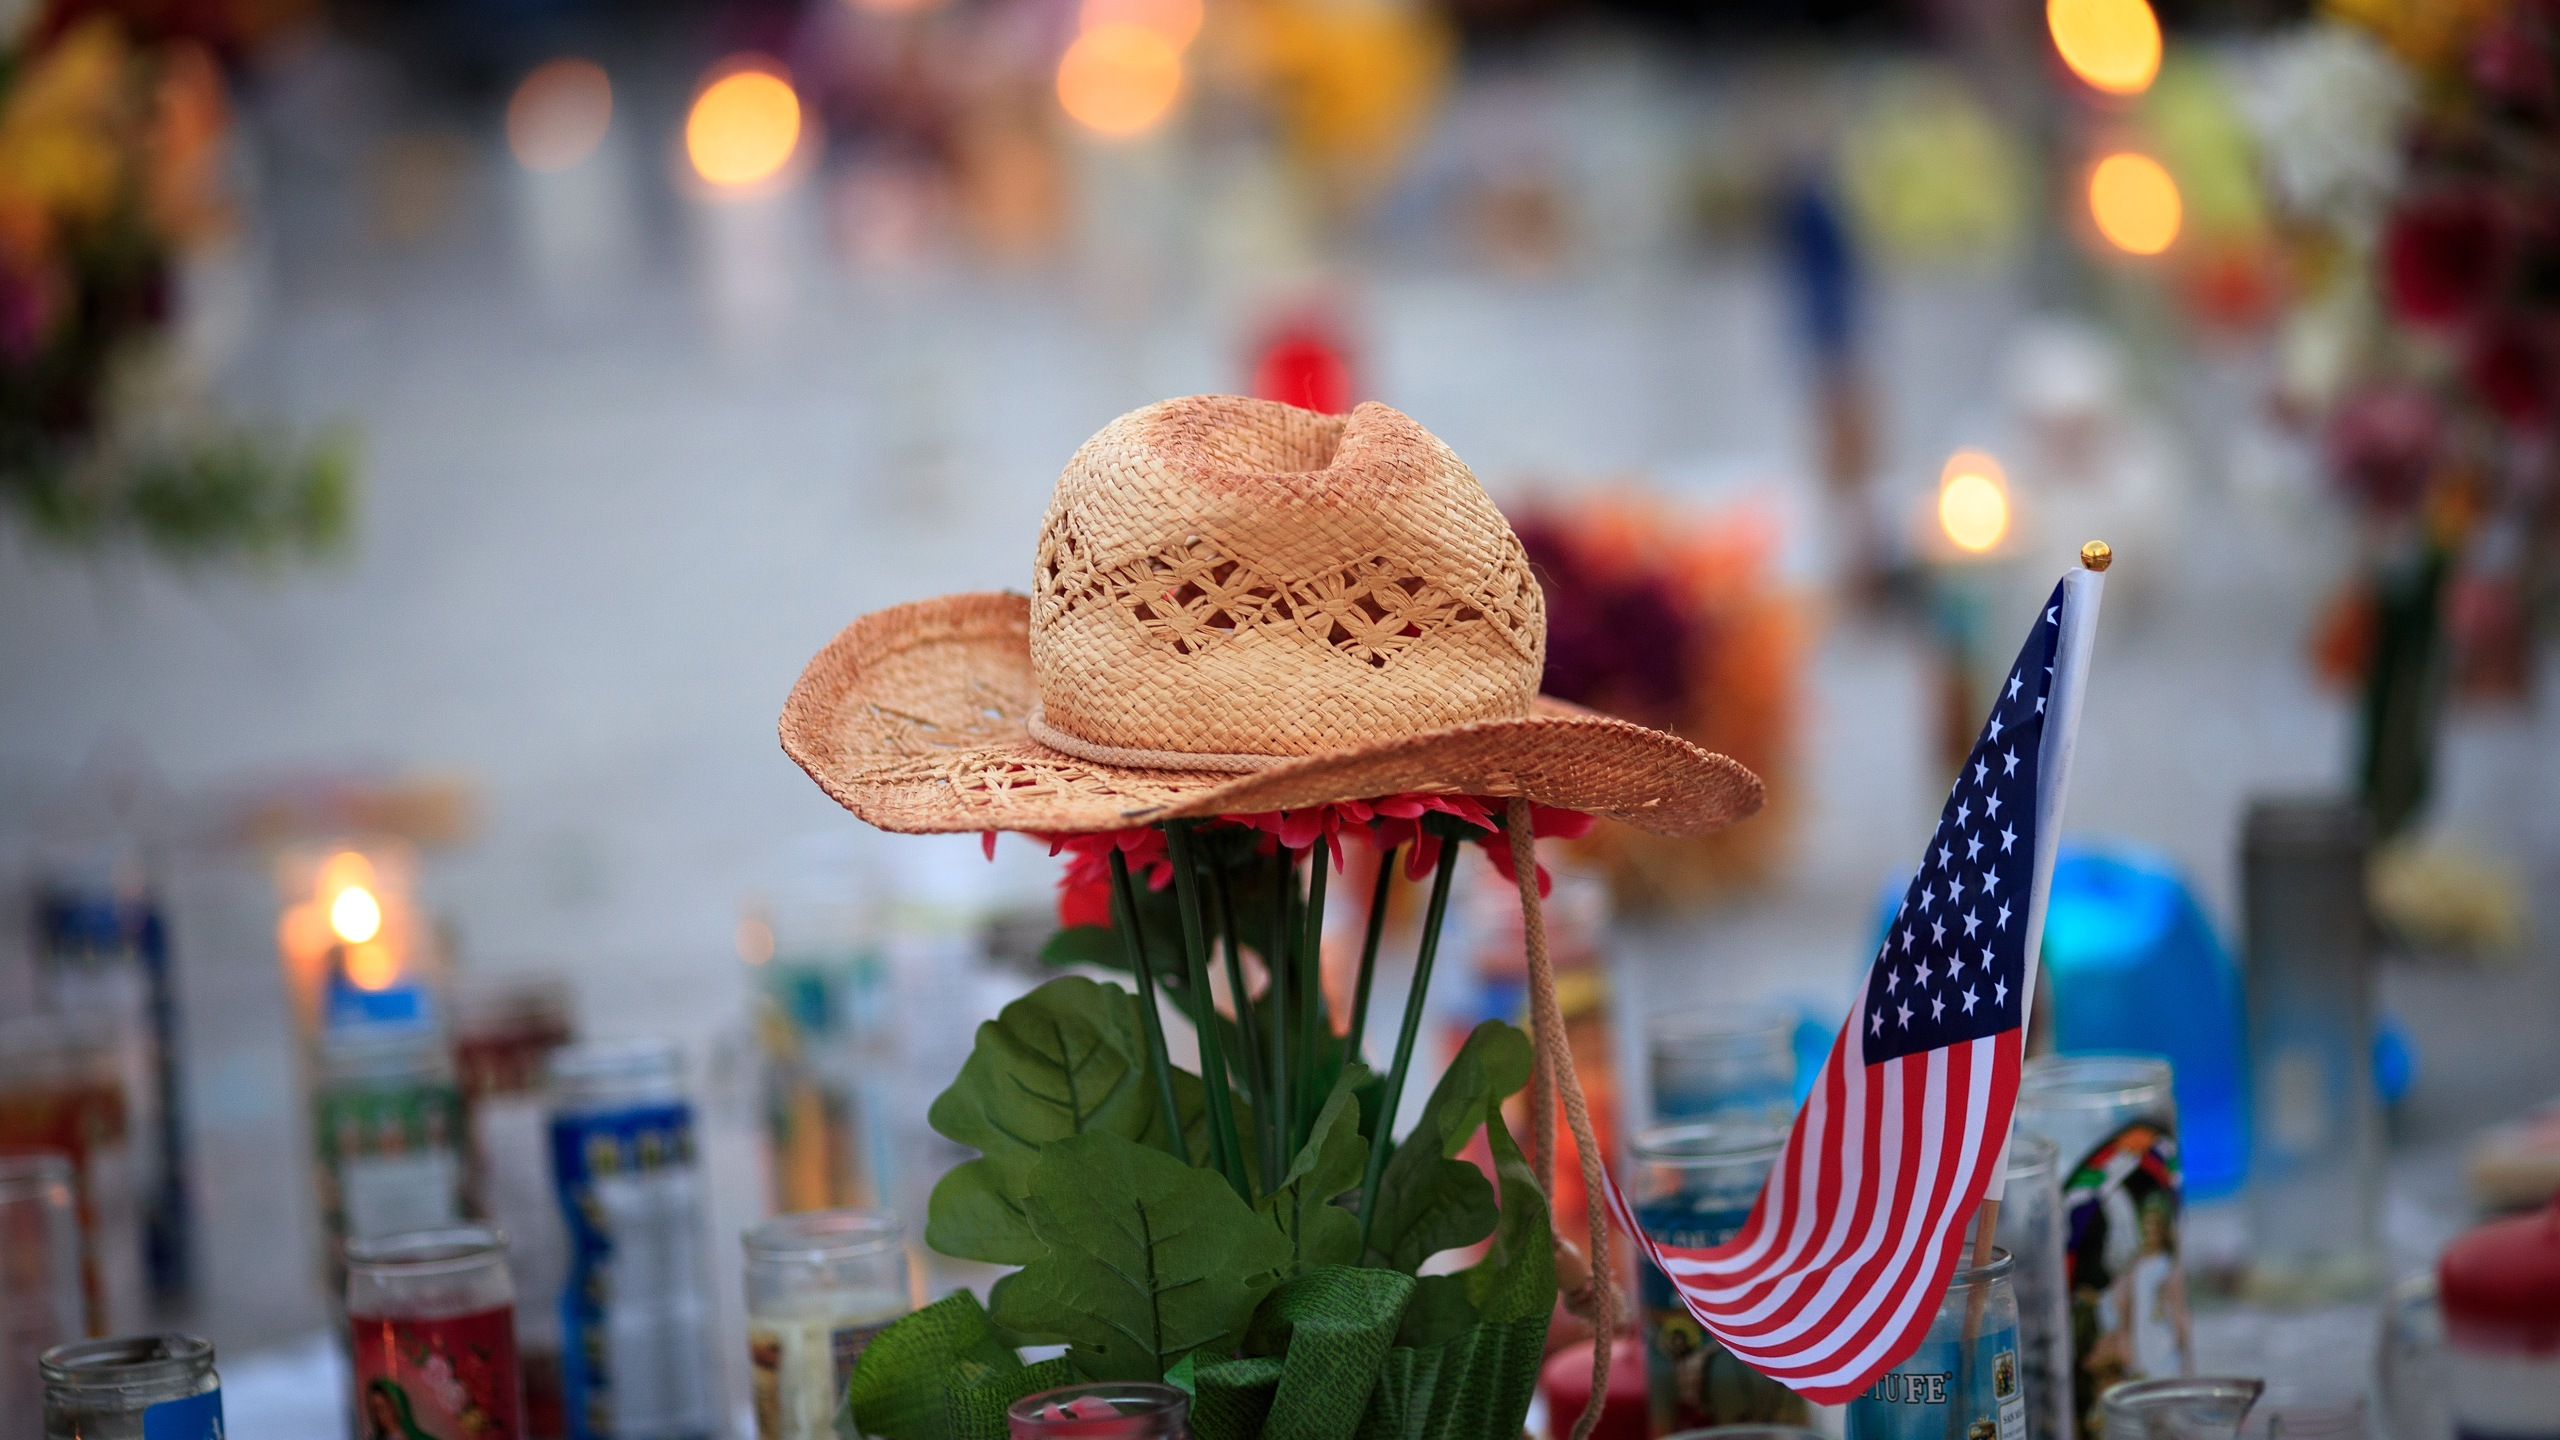 A hat is left at a makeshift memorial during a vigil to mark one week since the mass shooting at the Route 91 Harvest country music festival, on the corner of Sahara Avenue and Las Vegas Boulevard at the north end of the Las Vegas Strip, on Oct. 8, 2017. (Credit: Drew Angerer / Getty Images)